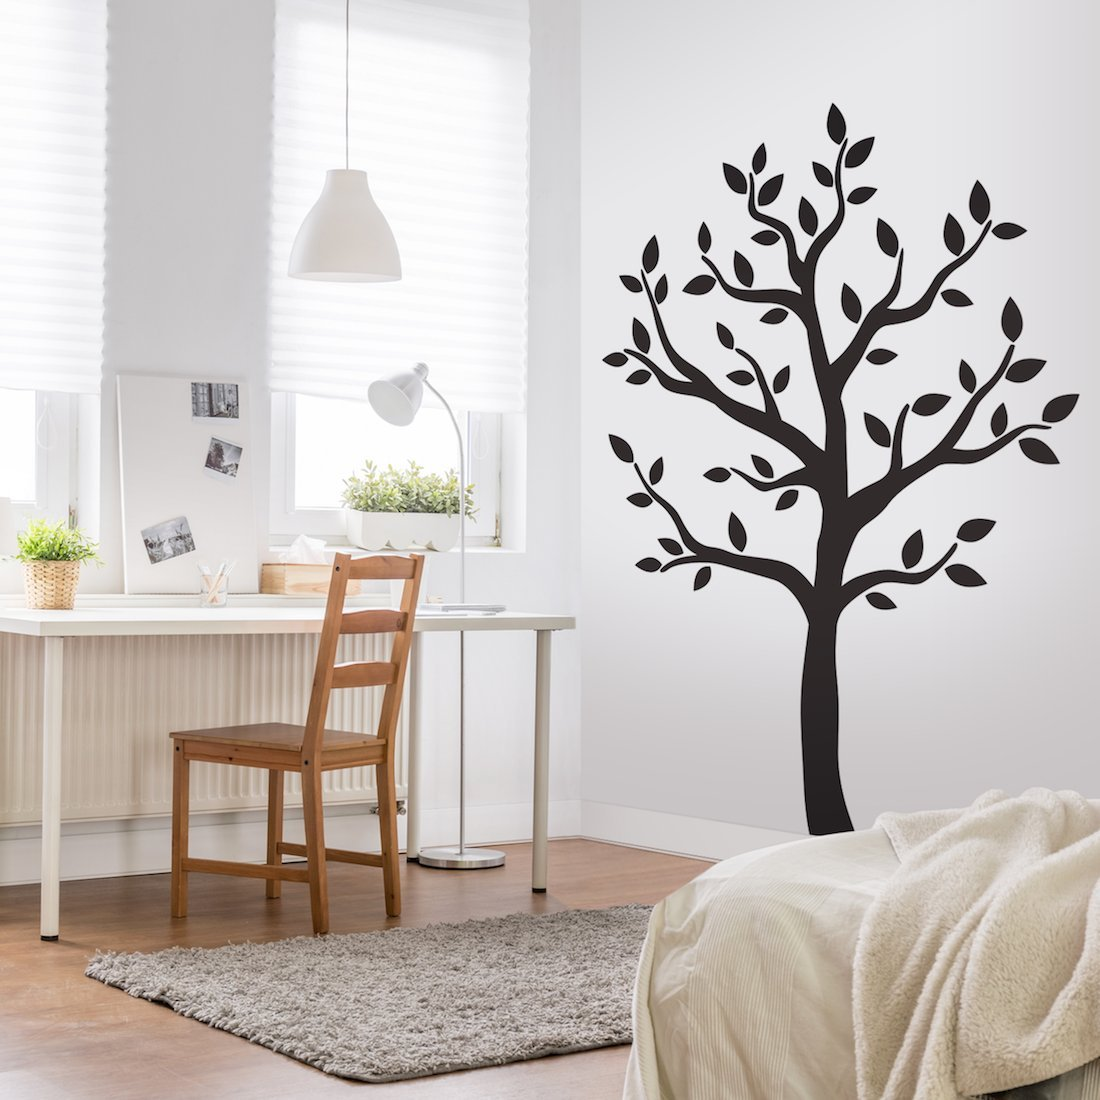 Amazon timber artbox large black tree wall decal the easy amazon timber artbox large black tree wall decal the easy to apply yet amazing decoration for your home health personal care amipublicfo Choice Image